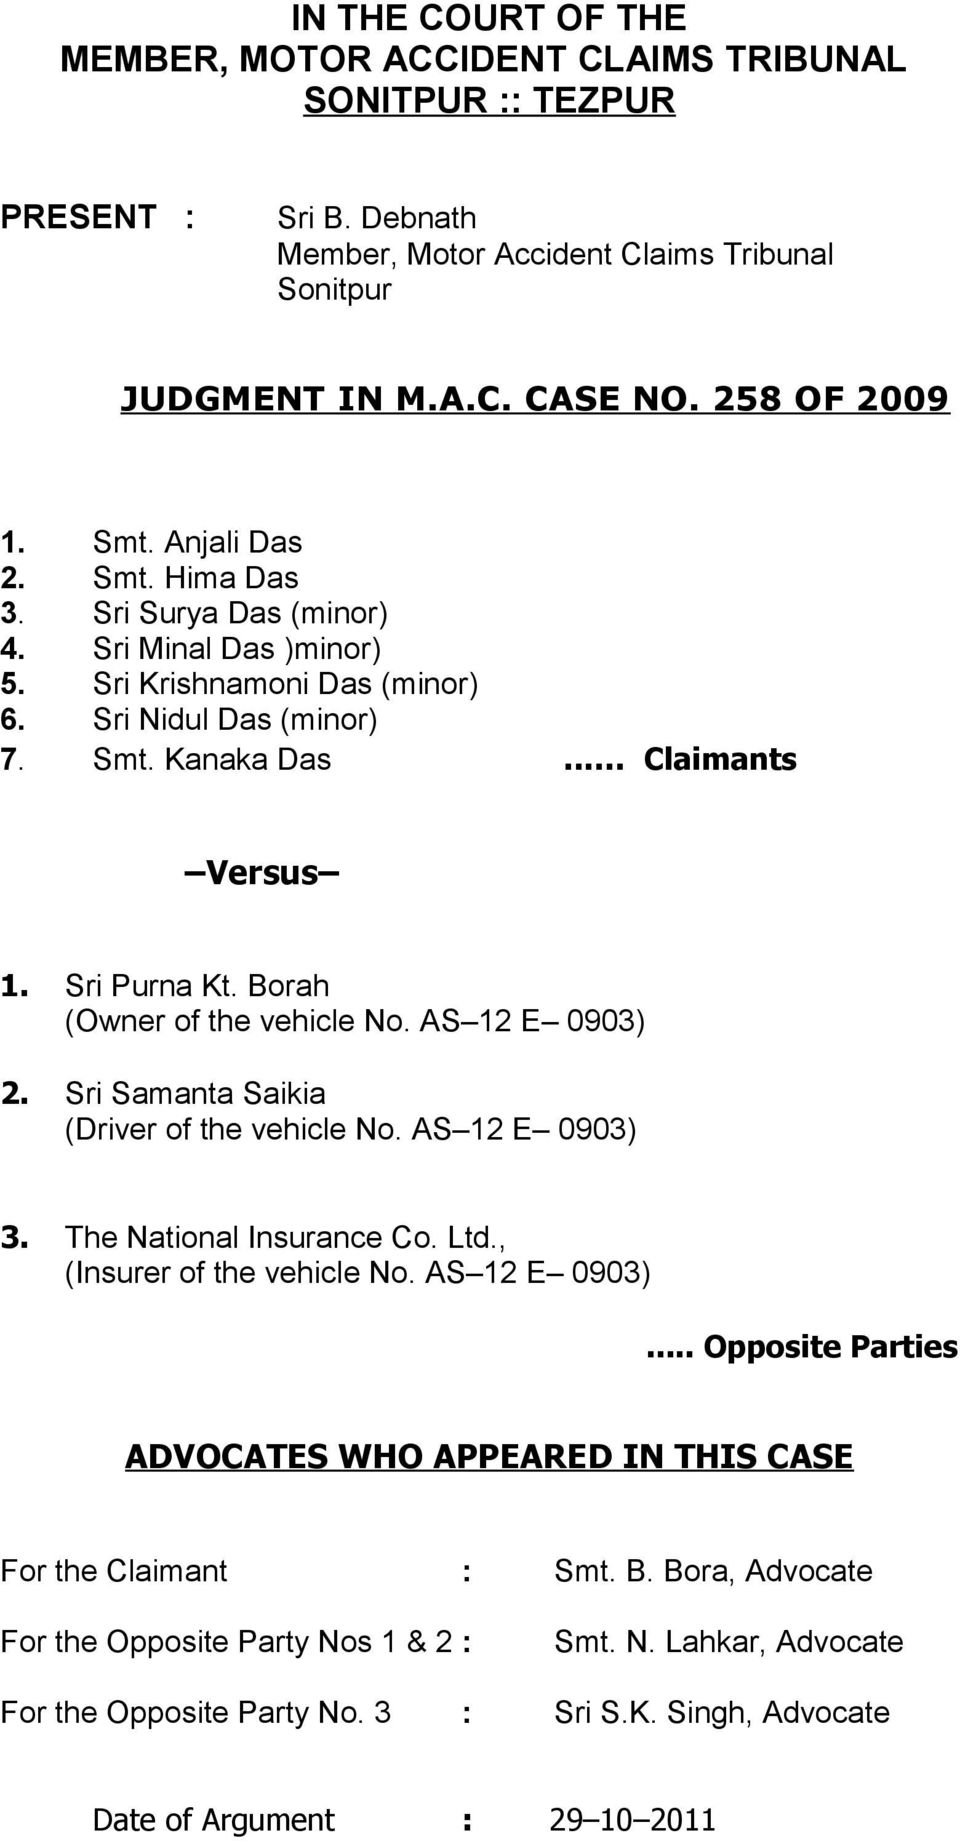 Borah (Owner of the vehicle No. AS 12 E 0903) 2. Sri Samanta Saikia (Driver of the vehicle No. AS 12 E 0903) 3. The National Insurance Co. Ltd., (Insurer of the vehicle No. AS 12 E 0903)... Opposite Parties ADVOCATES WHO APPEARED IN THIS CASE For the Claimant : Smt.